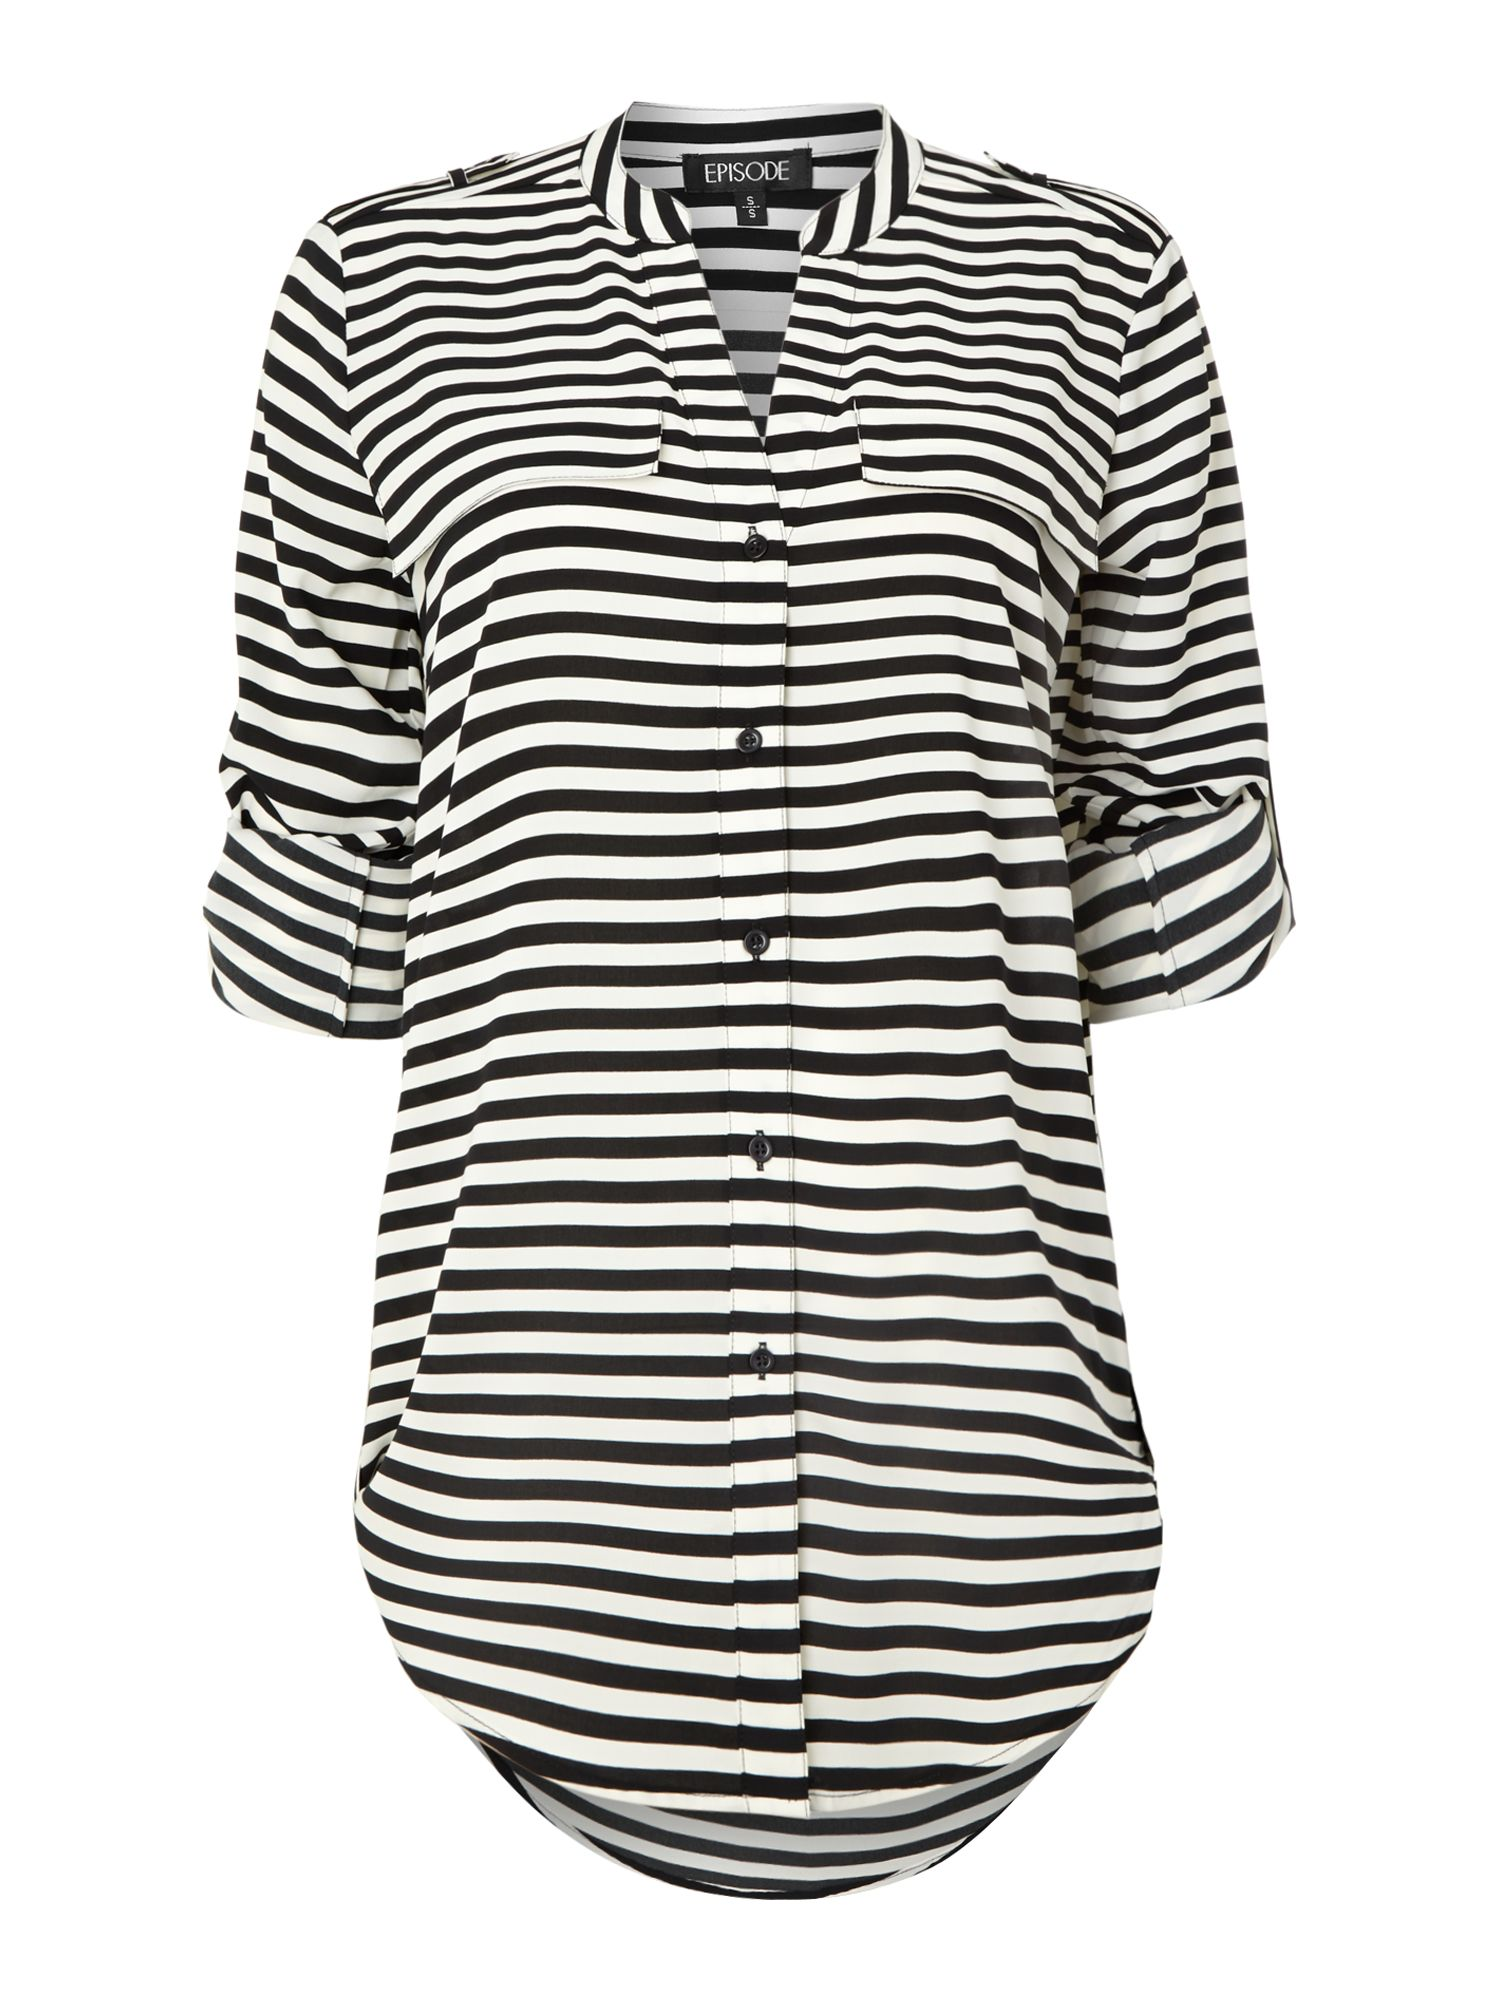 Stripe 3/4 Sleeve Shirt With Roll Up Sleeves